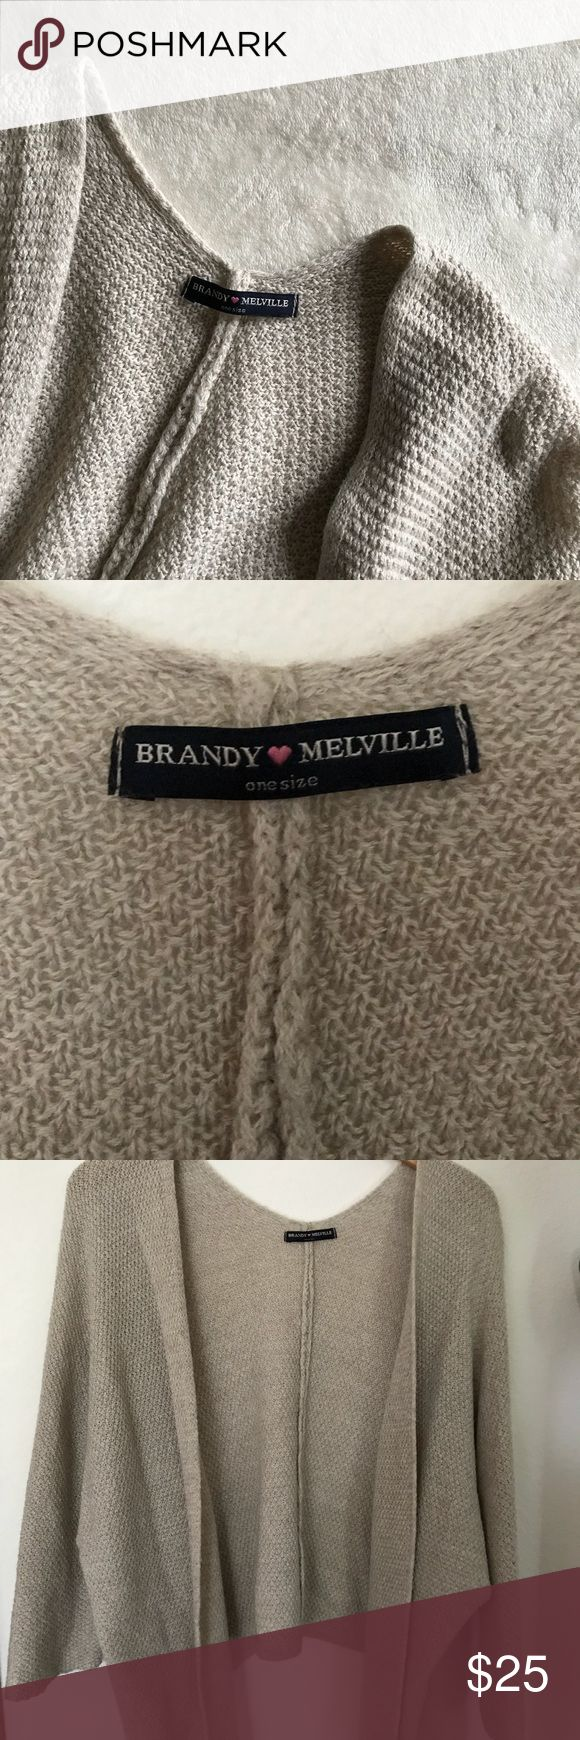 Brandy Melville Cardigan •Tan cardigan •One size •Flowy & comfortable!  •Knitted with no flaws •Open to offers! Brandy Melville Sweaters Cardigans